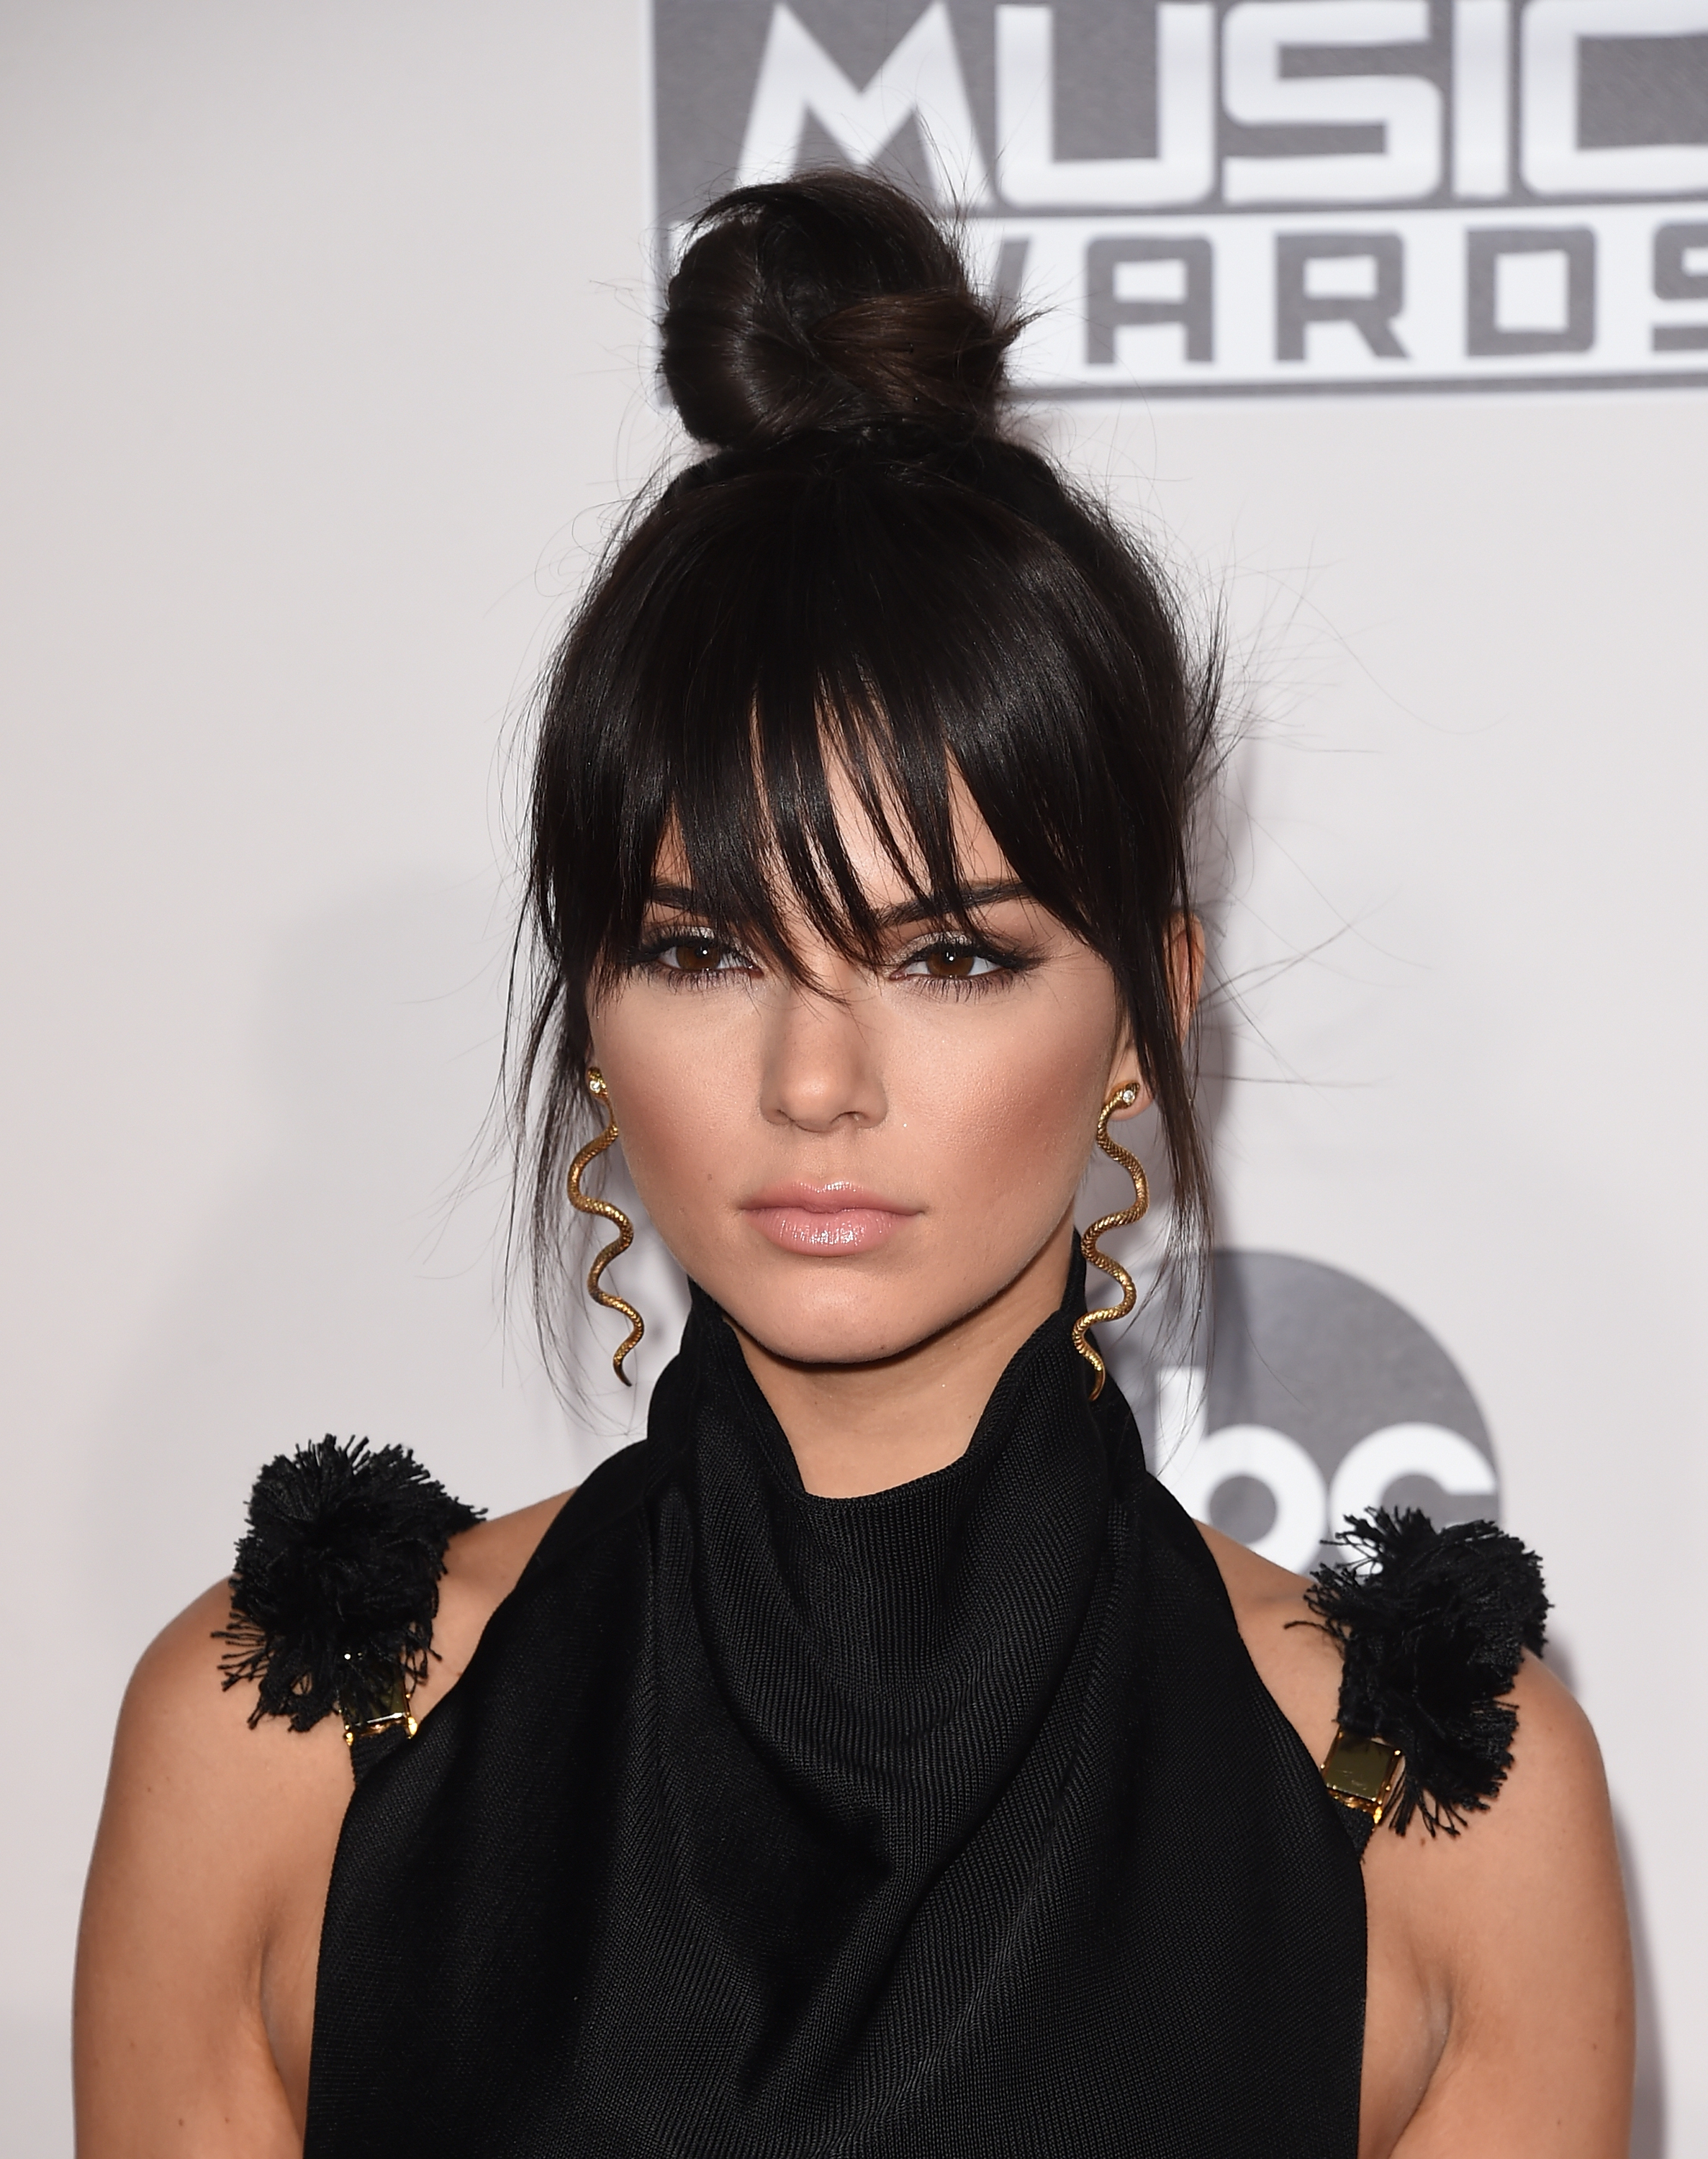 Enjoyable 100 Hairstyles With Bangs You39Ll Want To Copy Celebrity Haircuts Short Hairstyles Gunalazisus